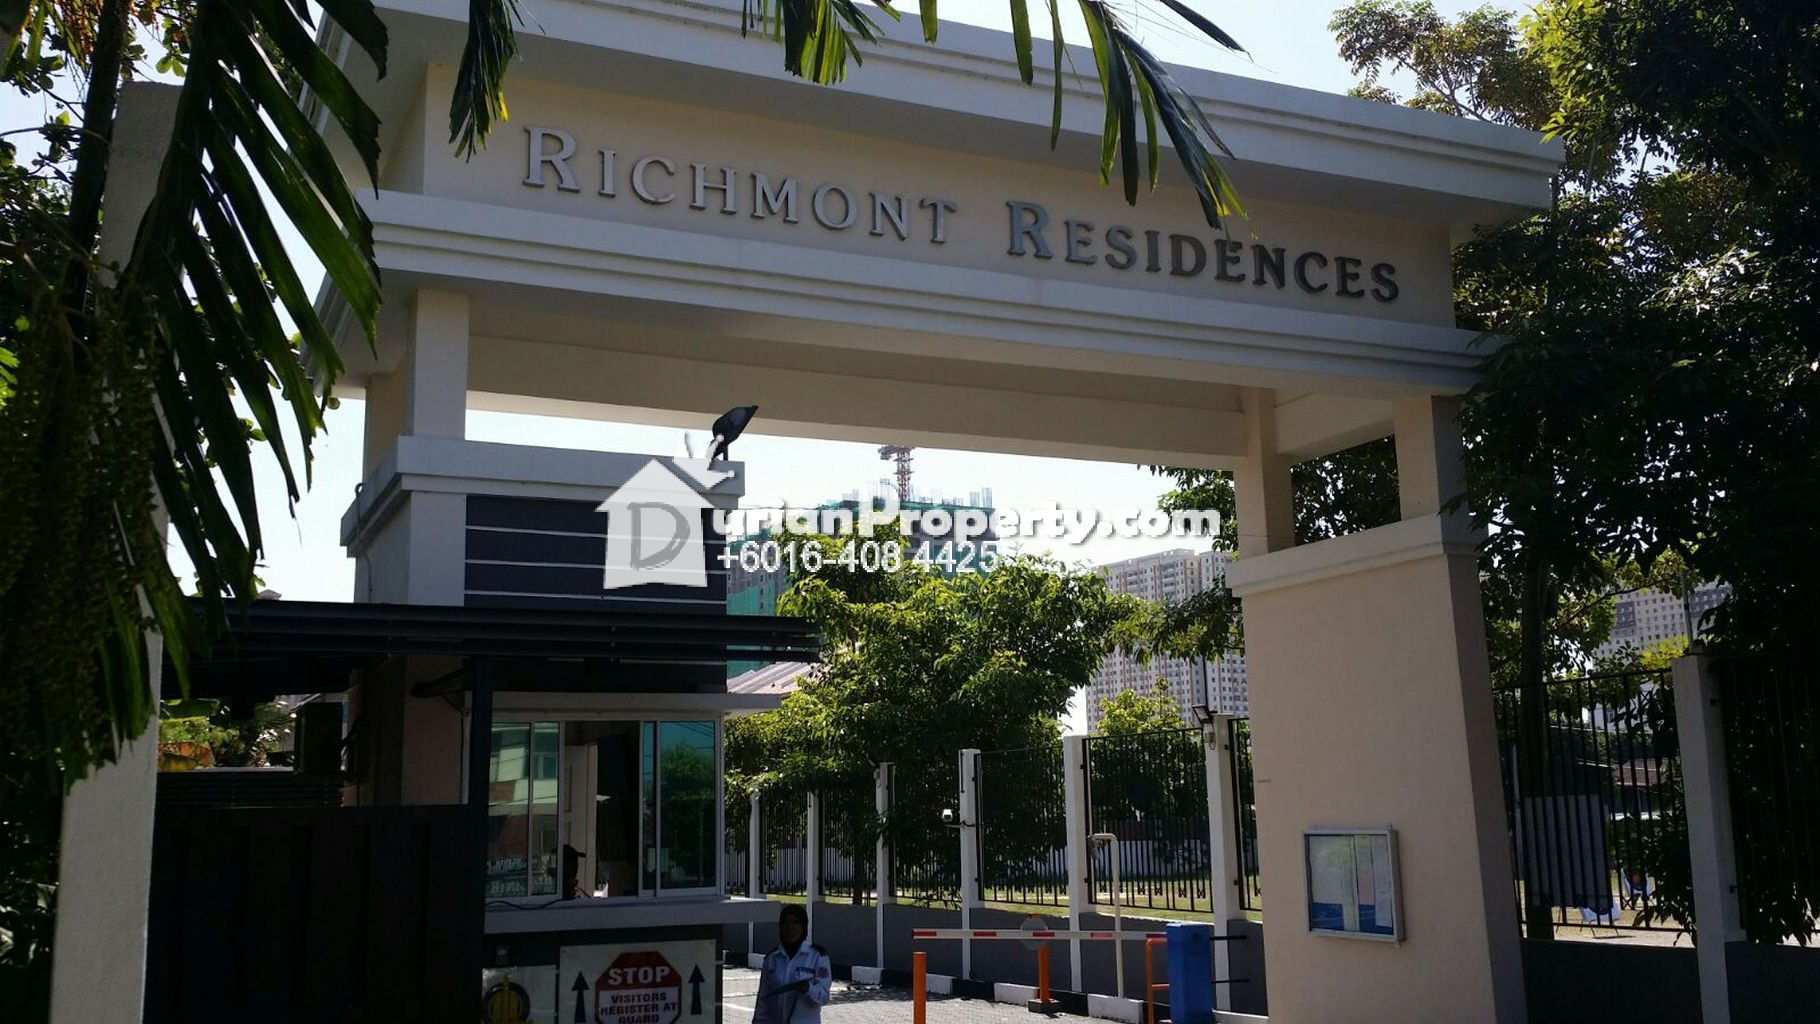 Terrace House For Sale At Richmont Residences Jelutong